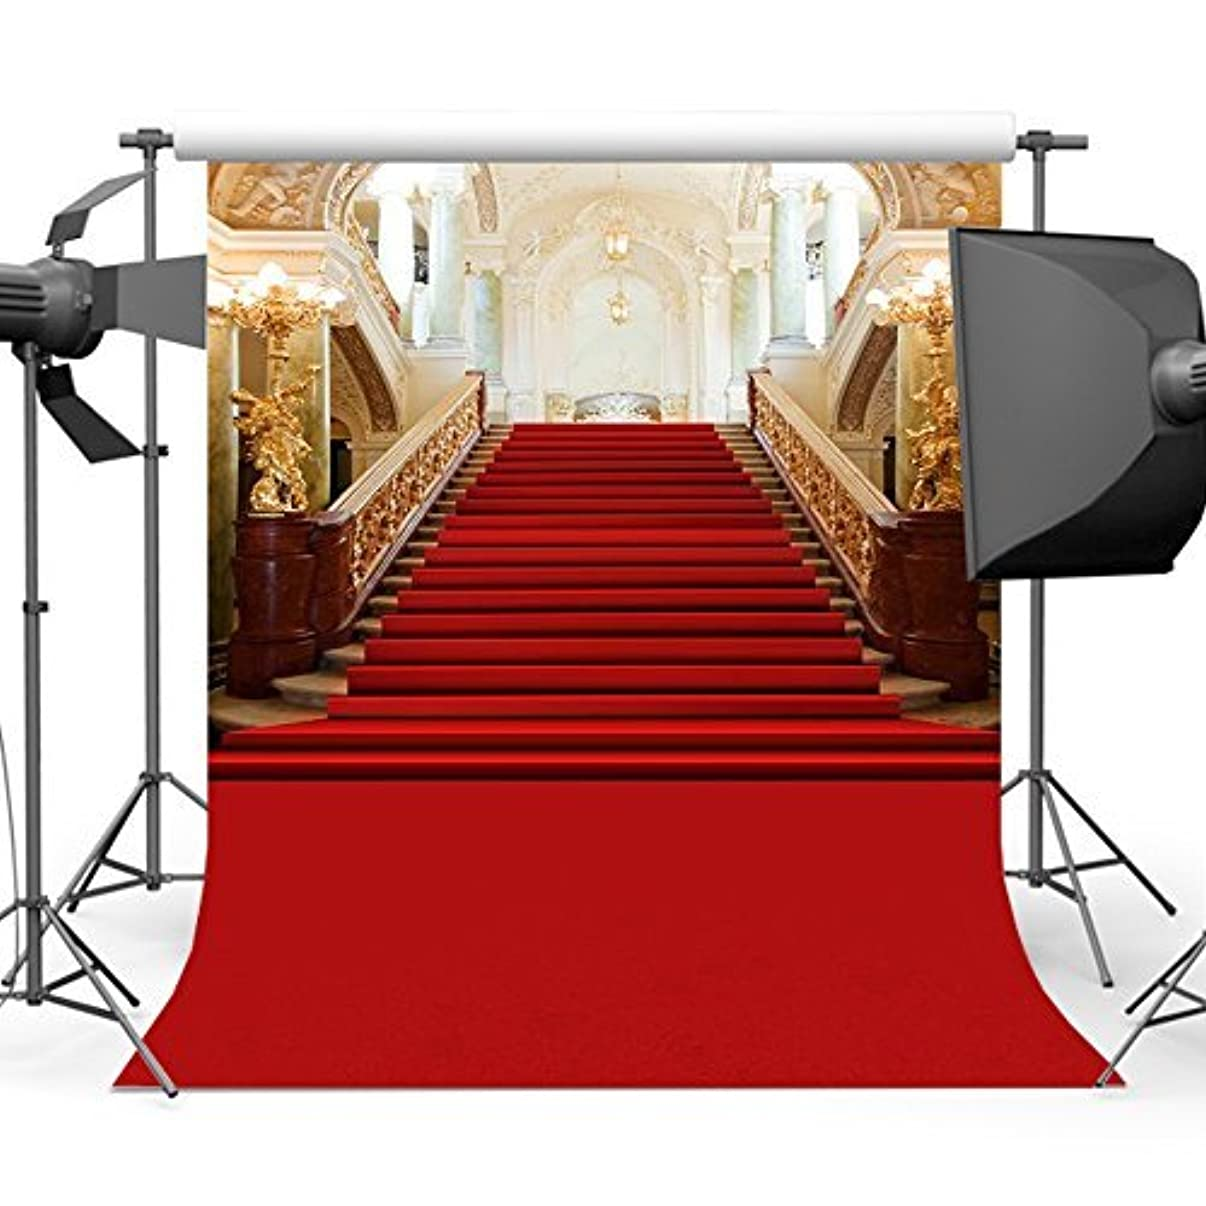 Mehofoto Red Carpet Backdrop Lighting Stage Photo Background for Wedding Birthday Parties 7x10 Professional Seamless Polyester Backdrops for Photographers